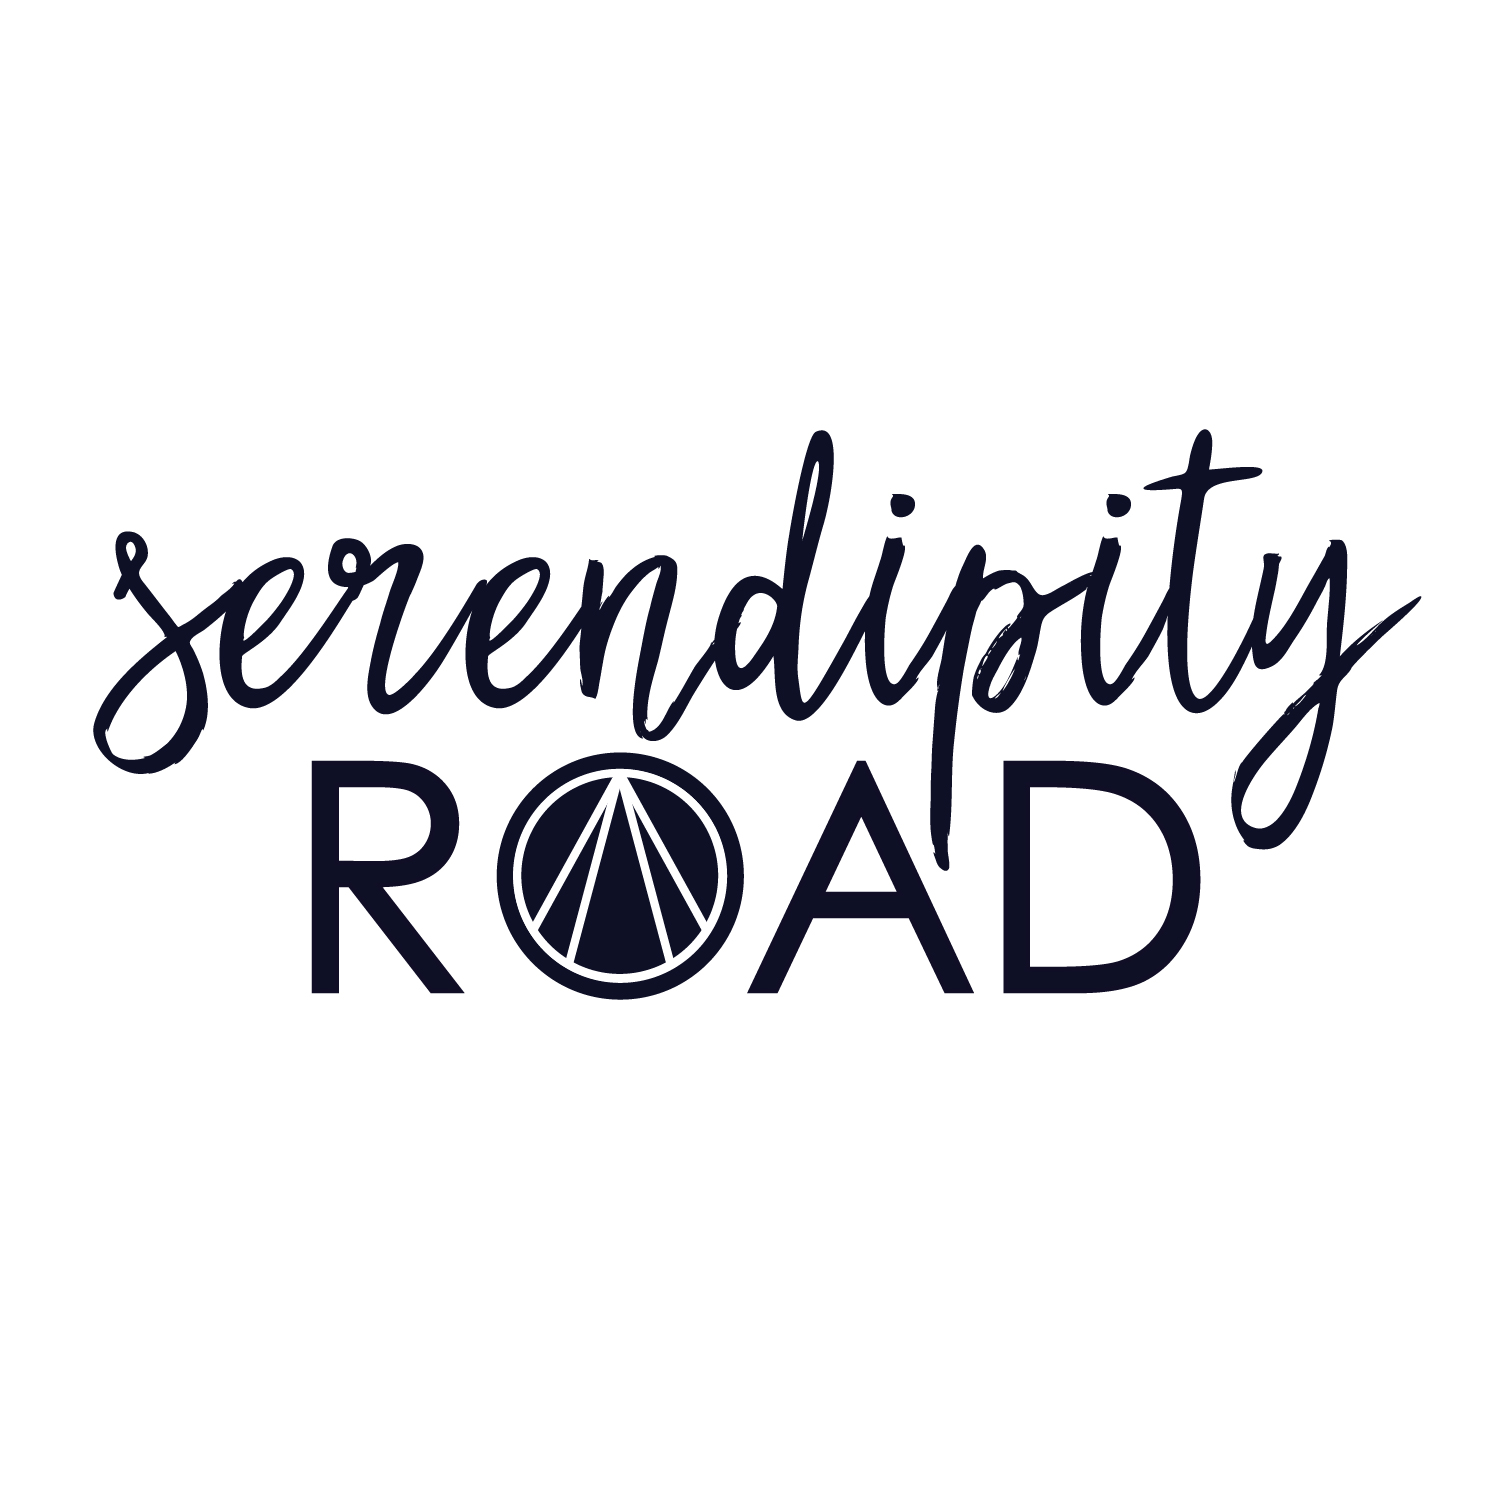 Serendipity Road